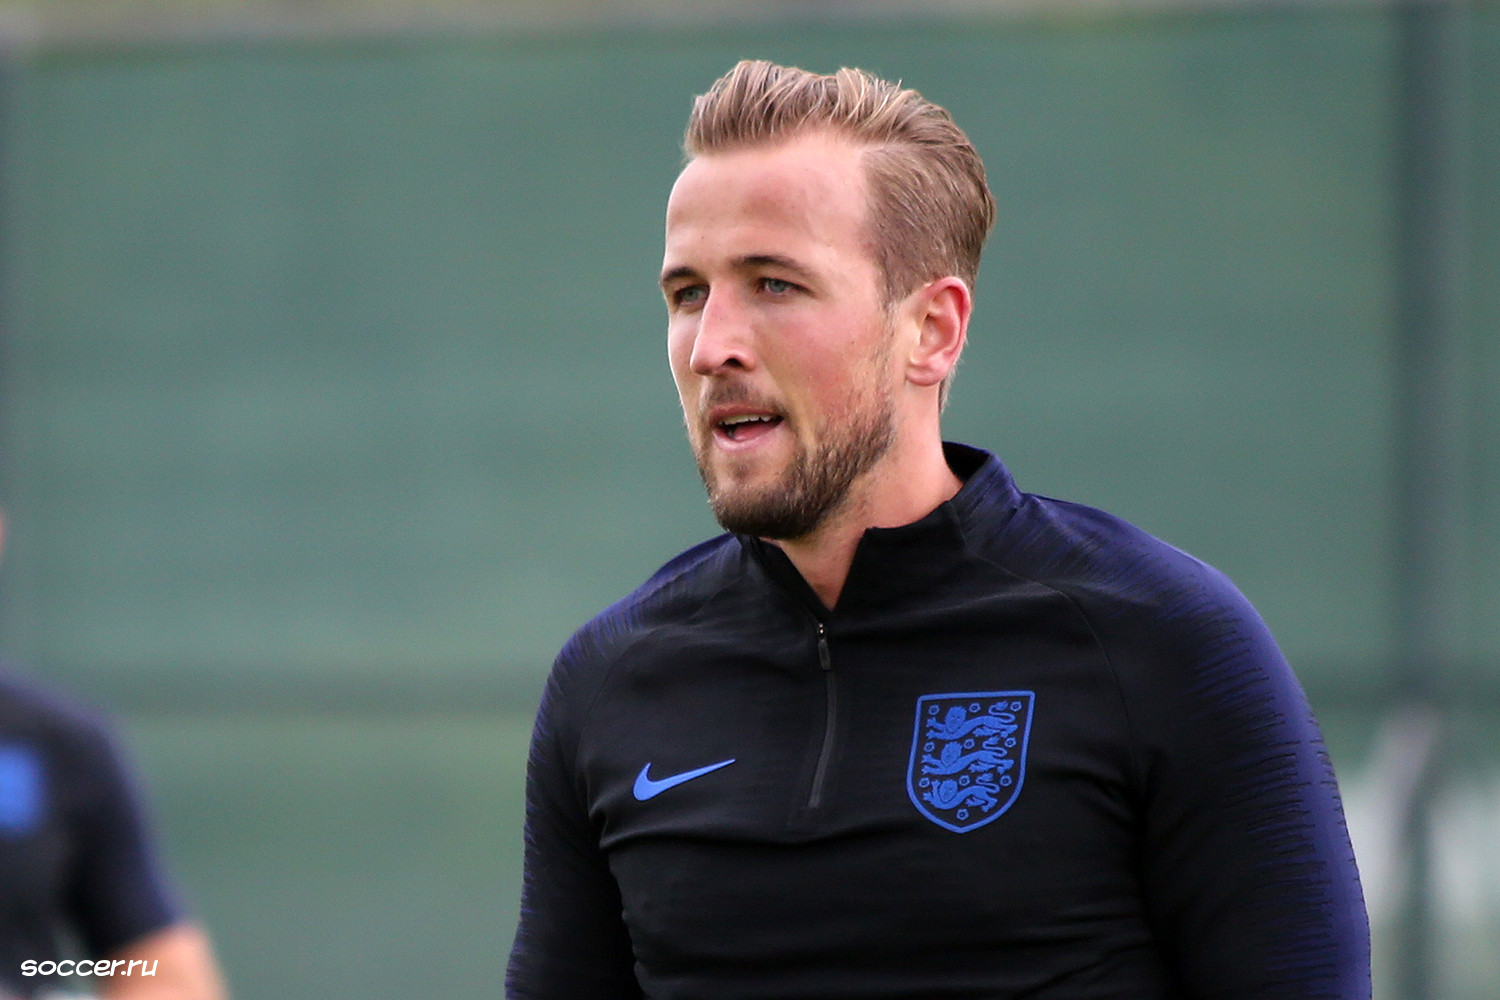 File:Harry Kane in Russia1.jpg - Wikimedia Commons